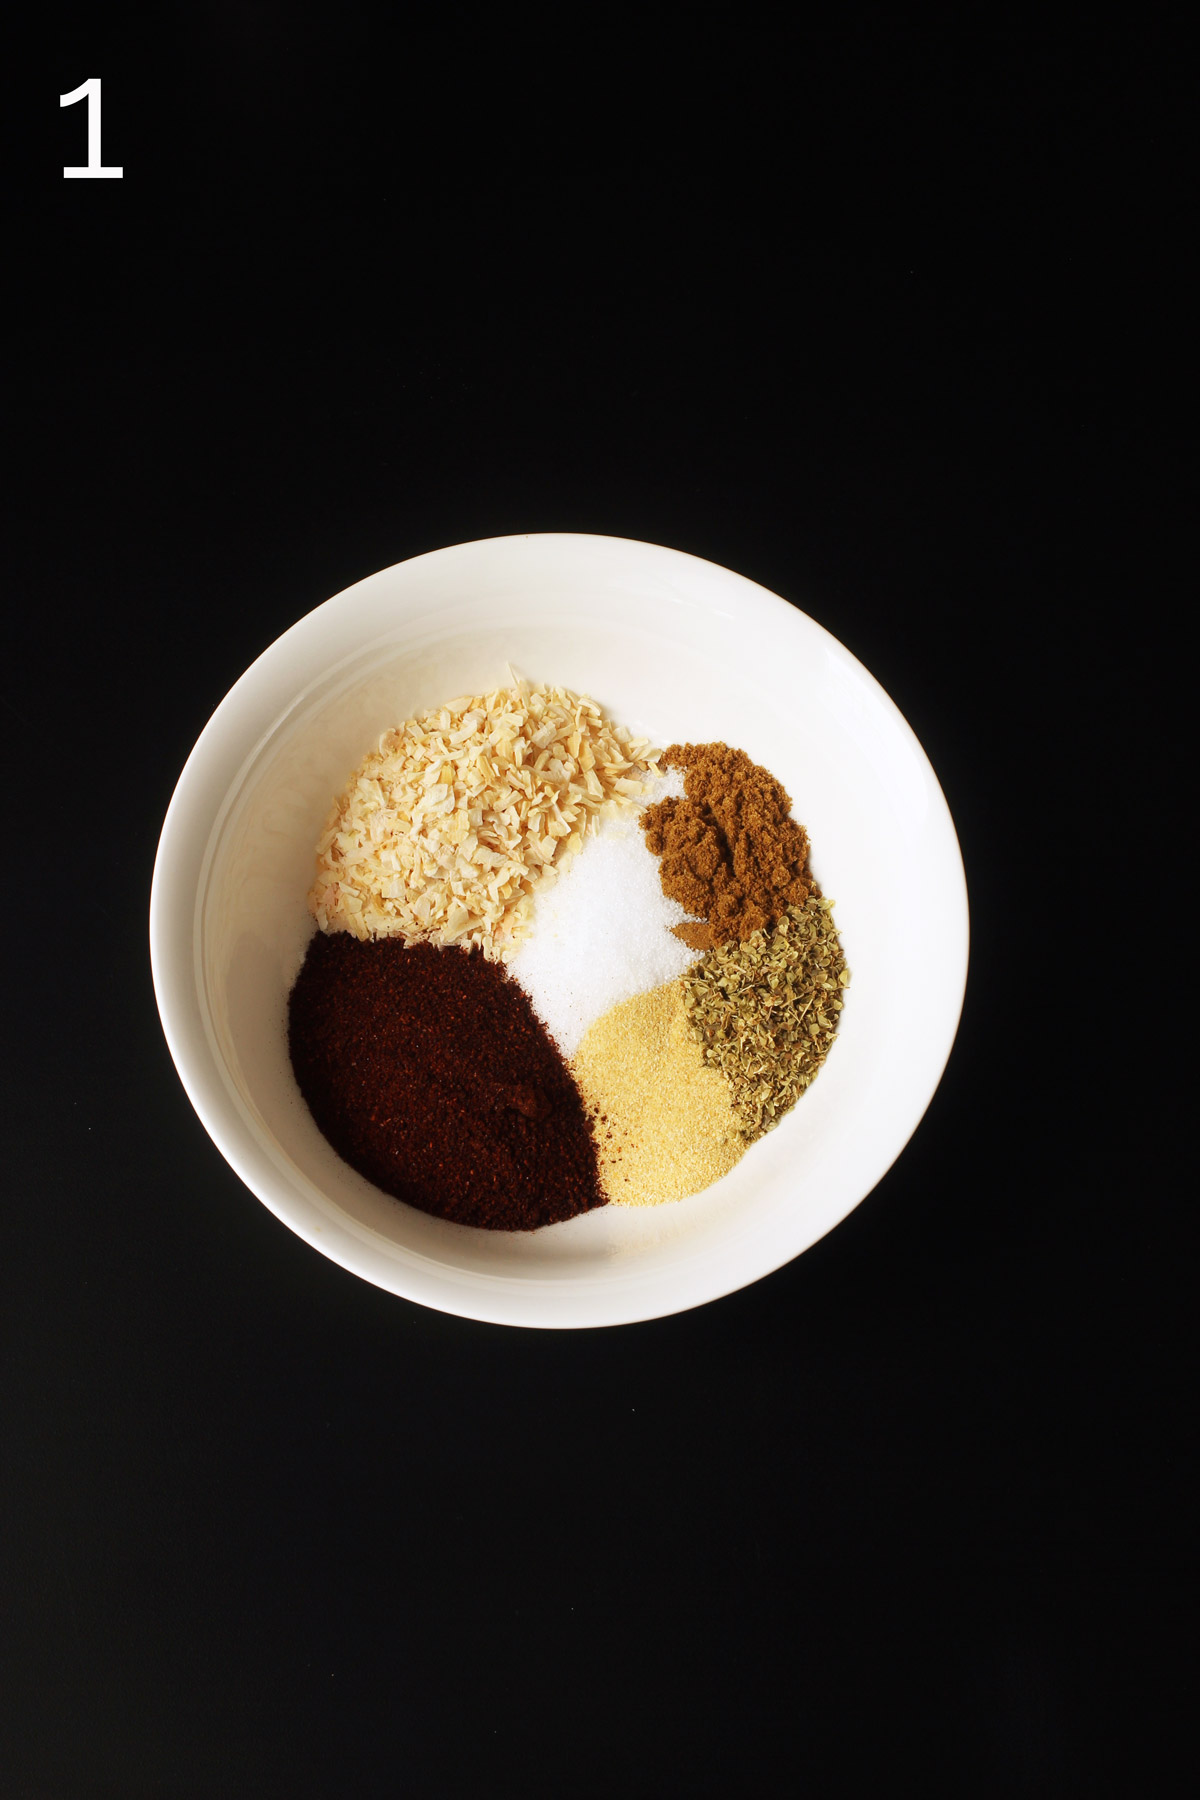 ingredients measured out into small white bowl.